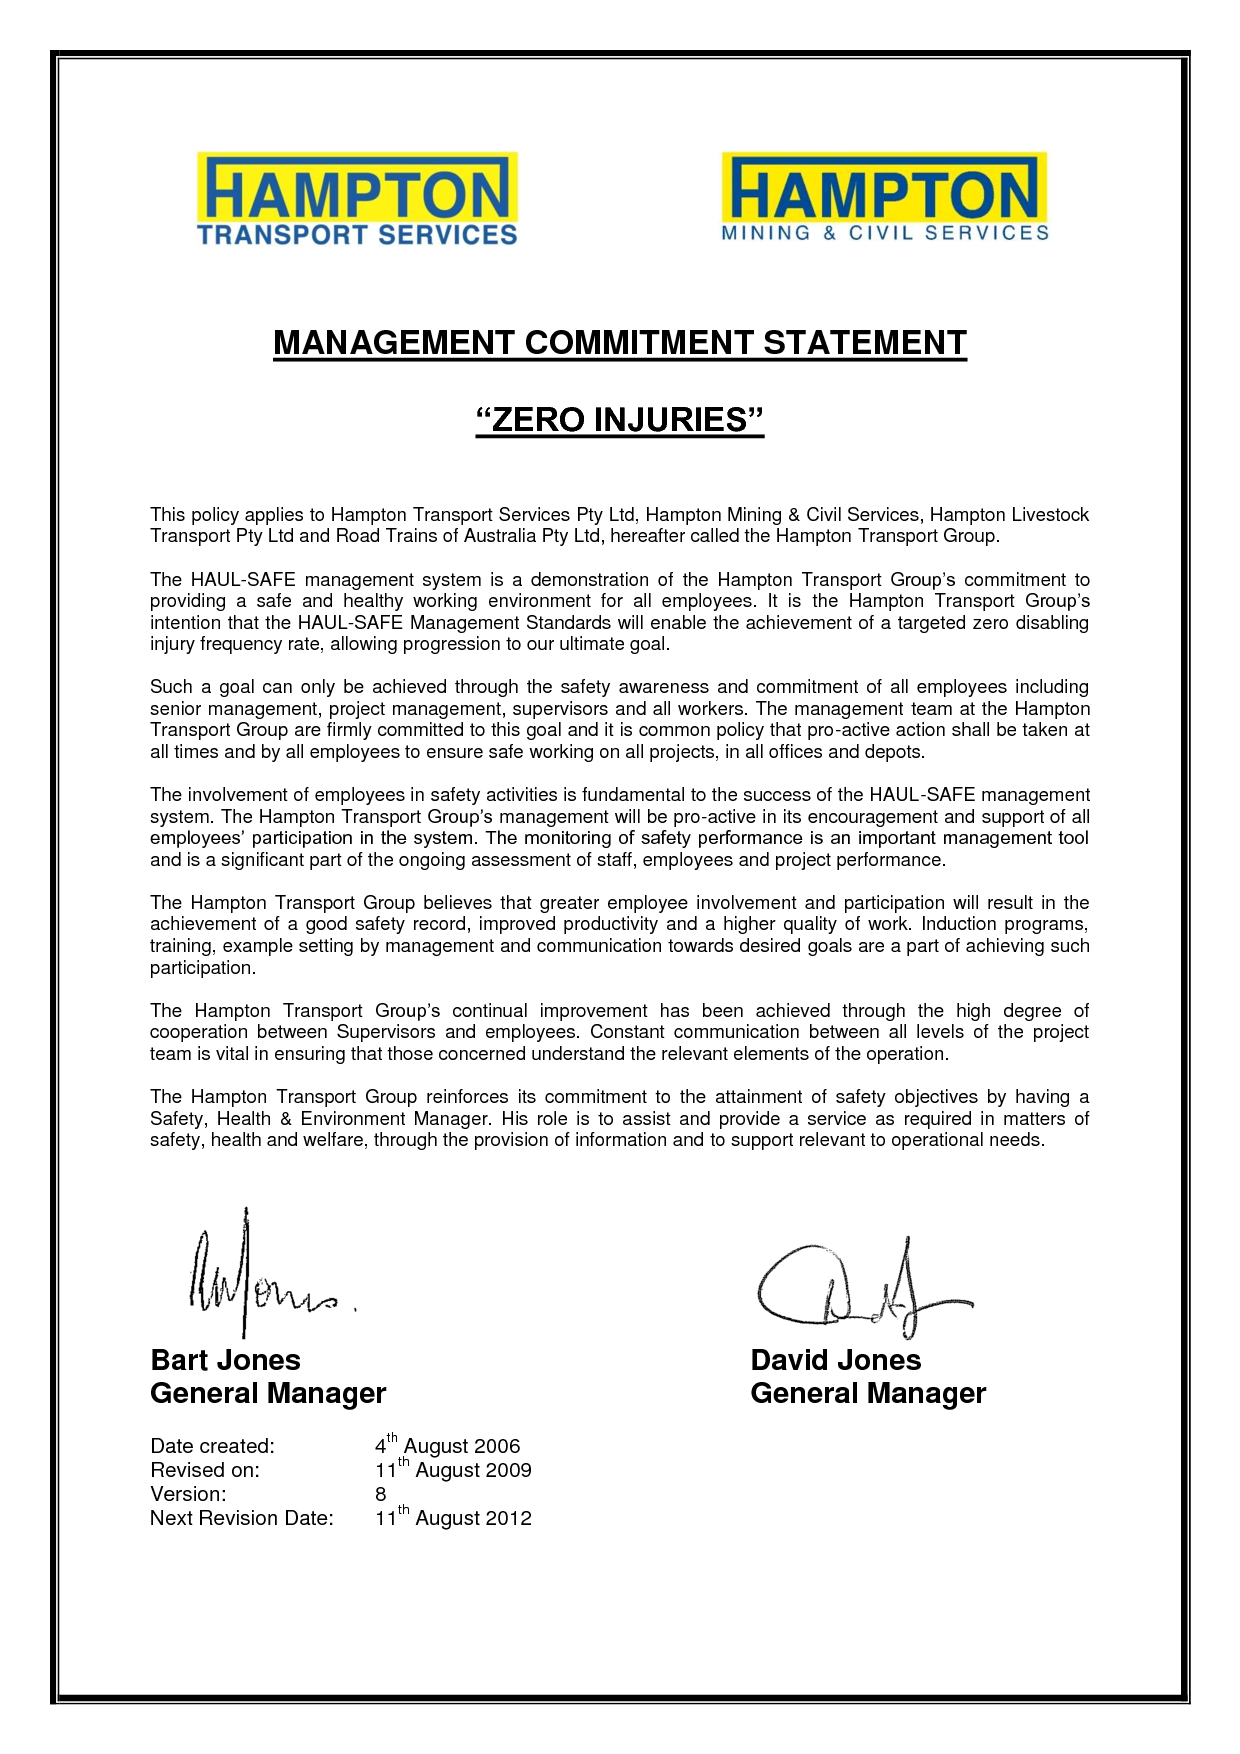 personal safety commitment statements